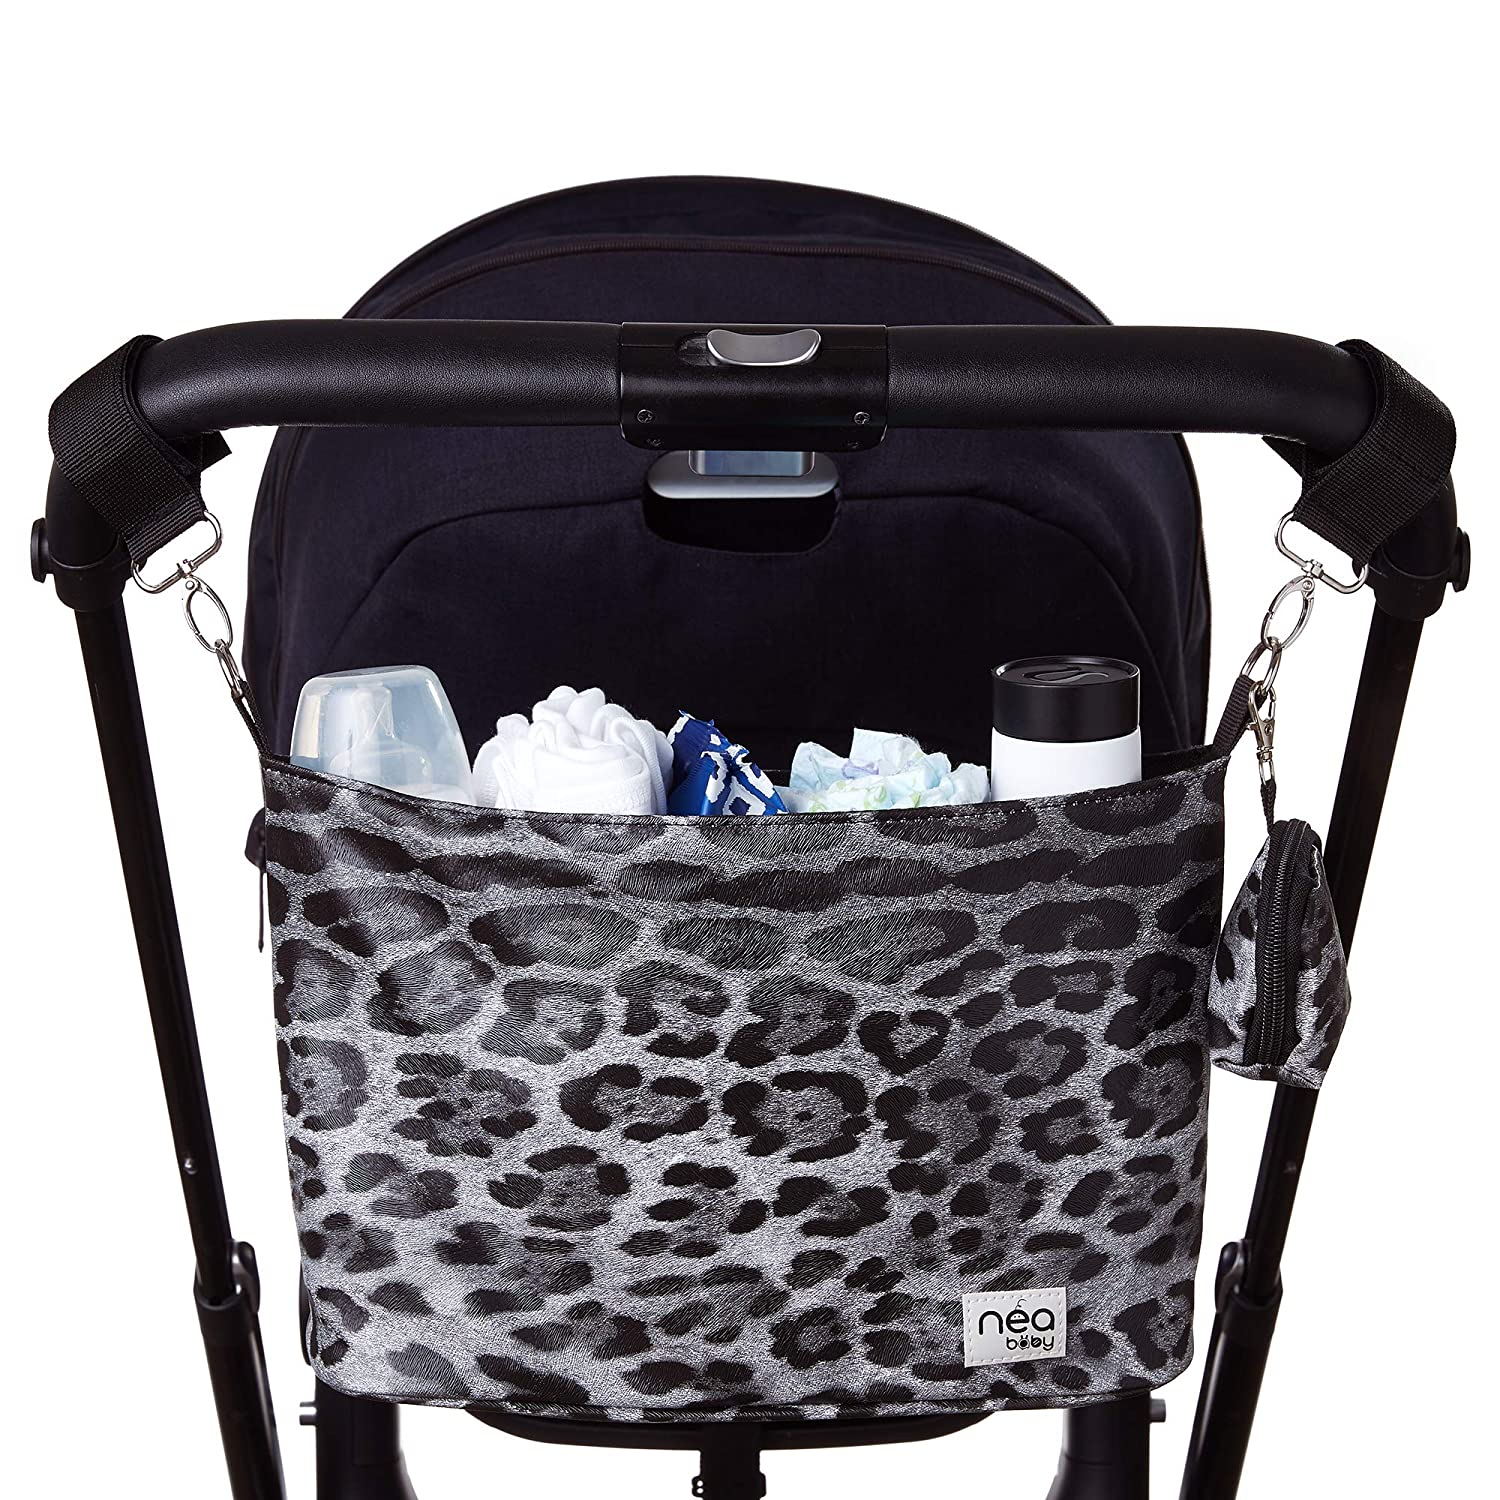 Stylish Stroller Organizer with Cup Holders and Detachable Pacifier Holder Case- Extra Storage Stroller Caddy Holds Mother's Care Products- Black Leopard